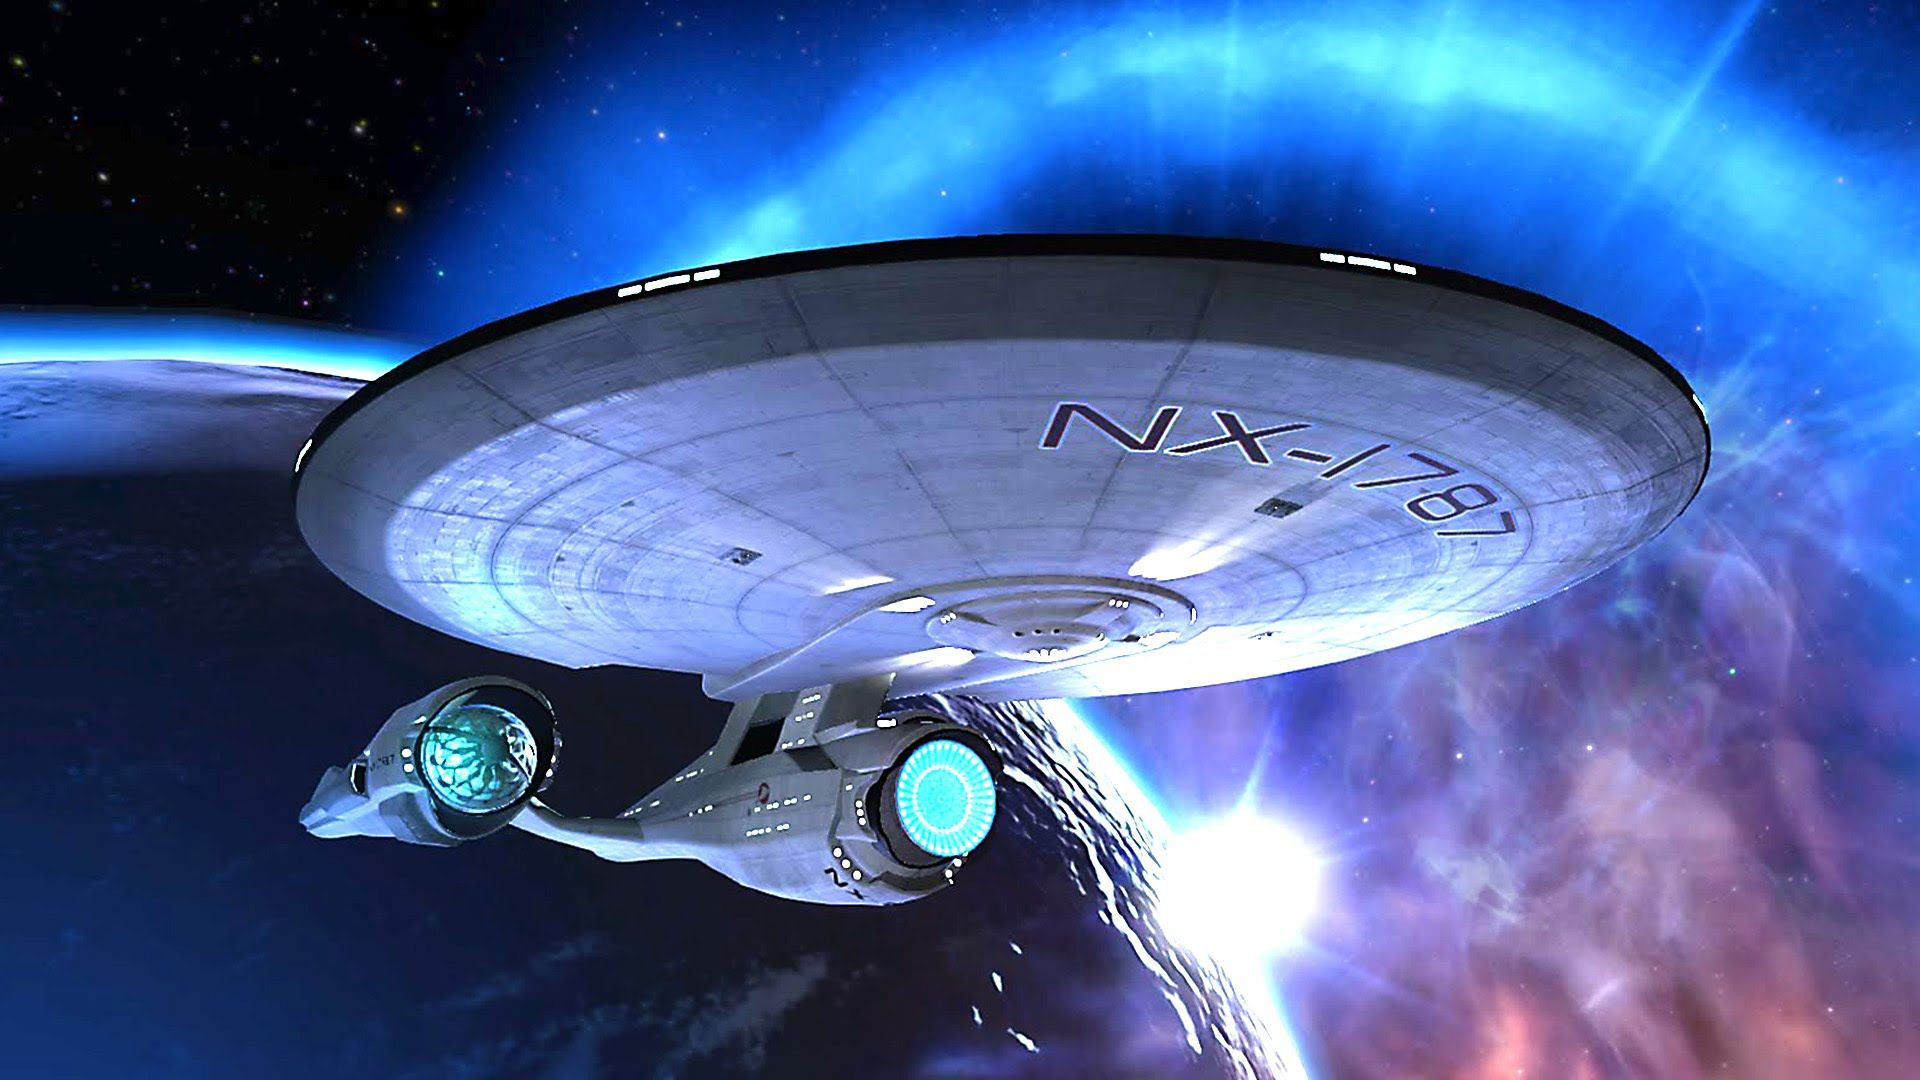 Star Trek Wallpaper For Pc Star Trek Wallpaper Star Trek Star